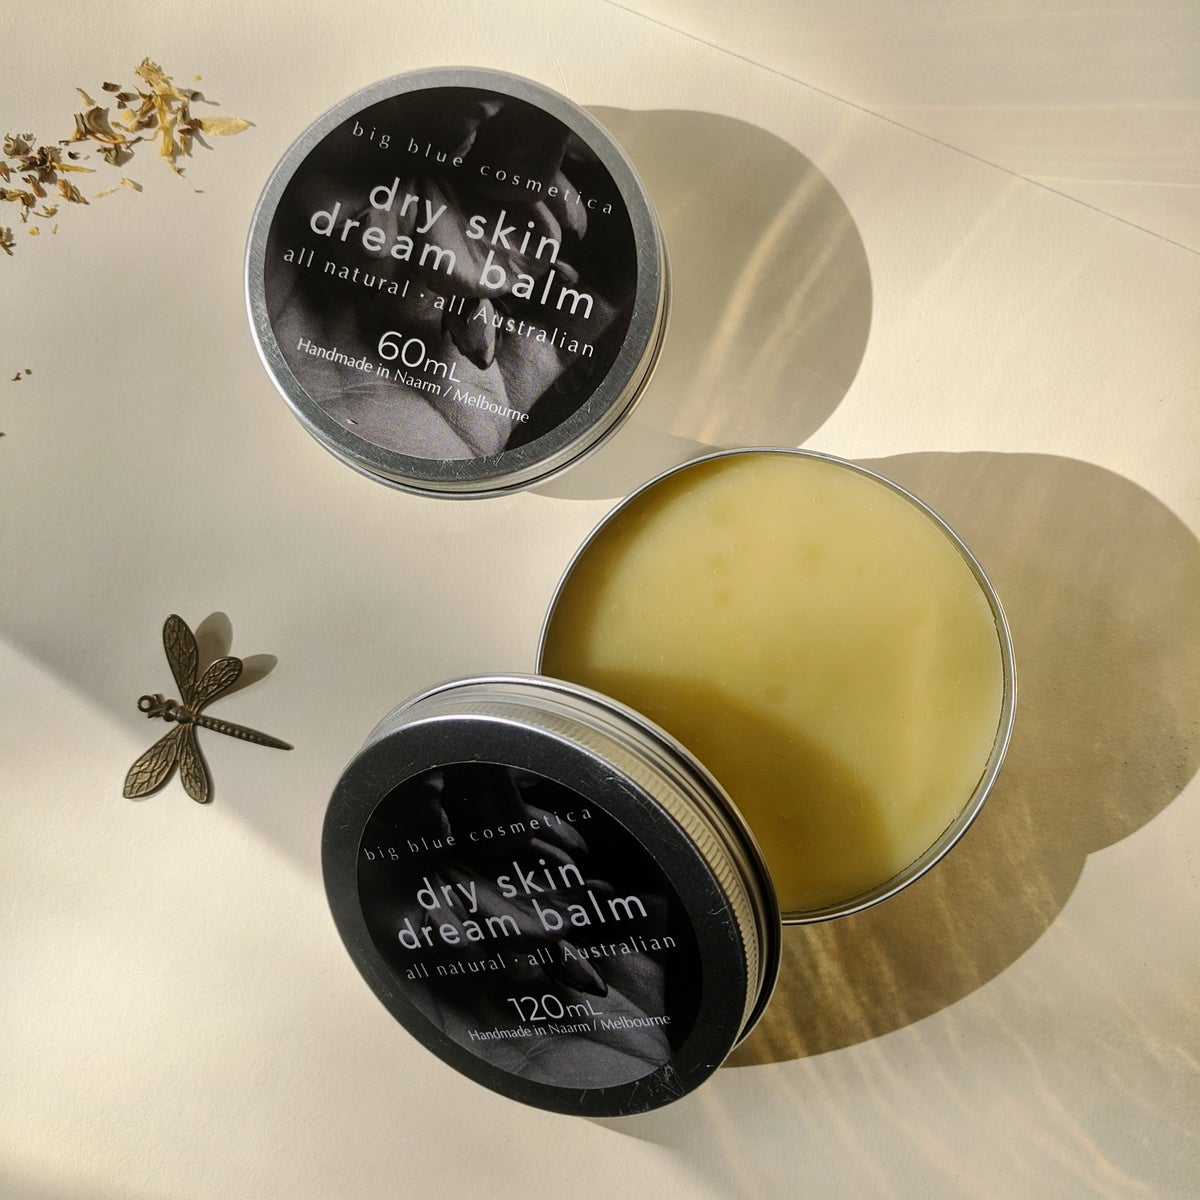 Image of dry skin dream balm